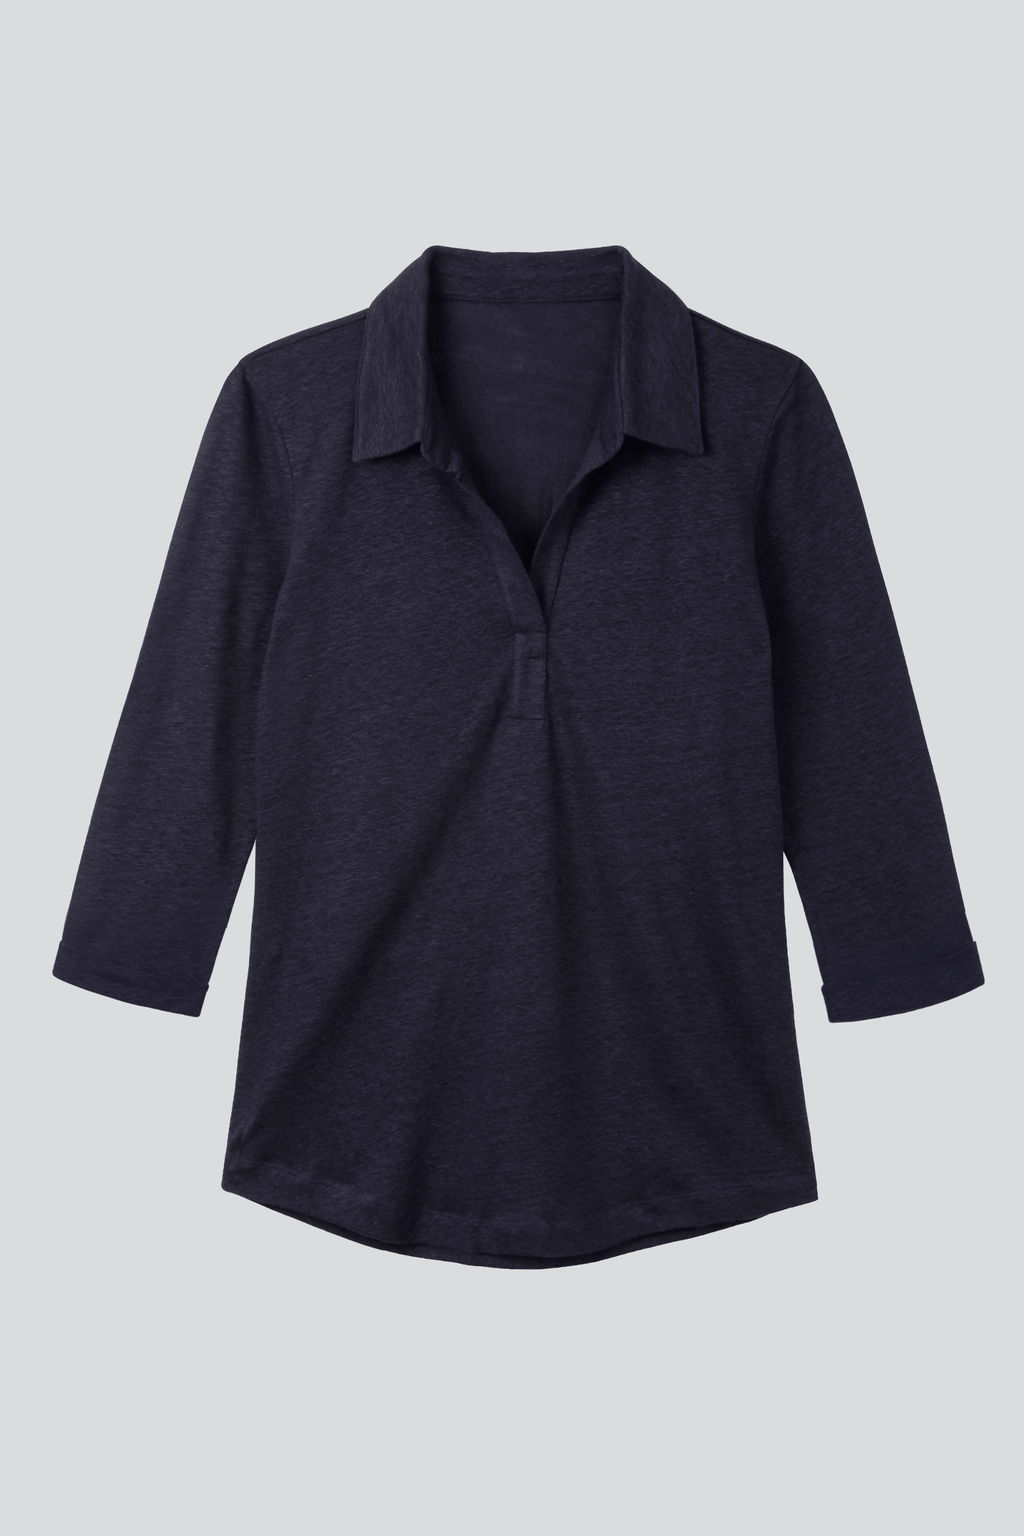 Collared Linen T-shirt 3/4 Sleeve T-shirt Lavender Hill Clothing